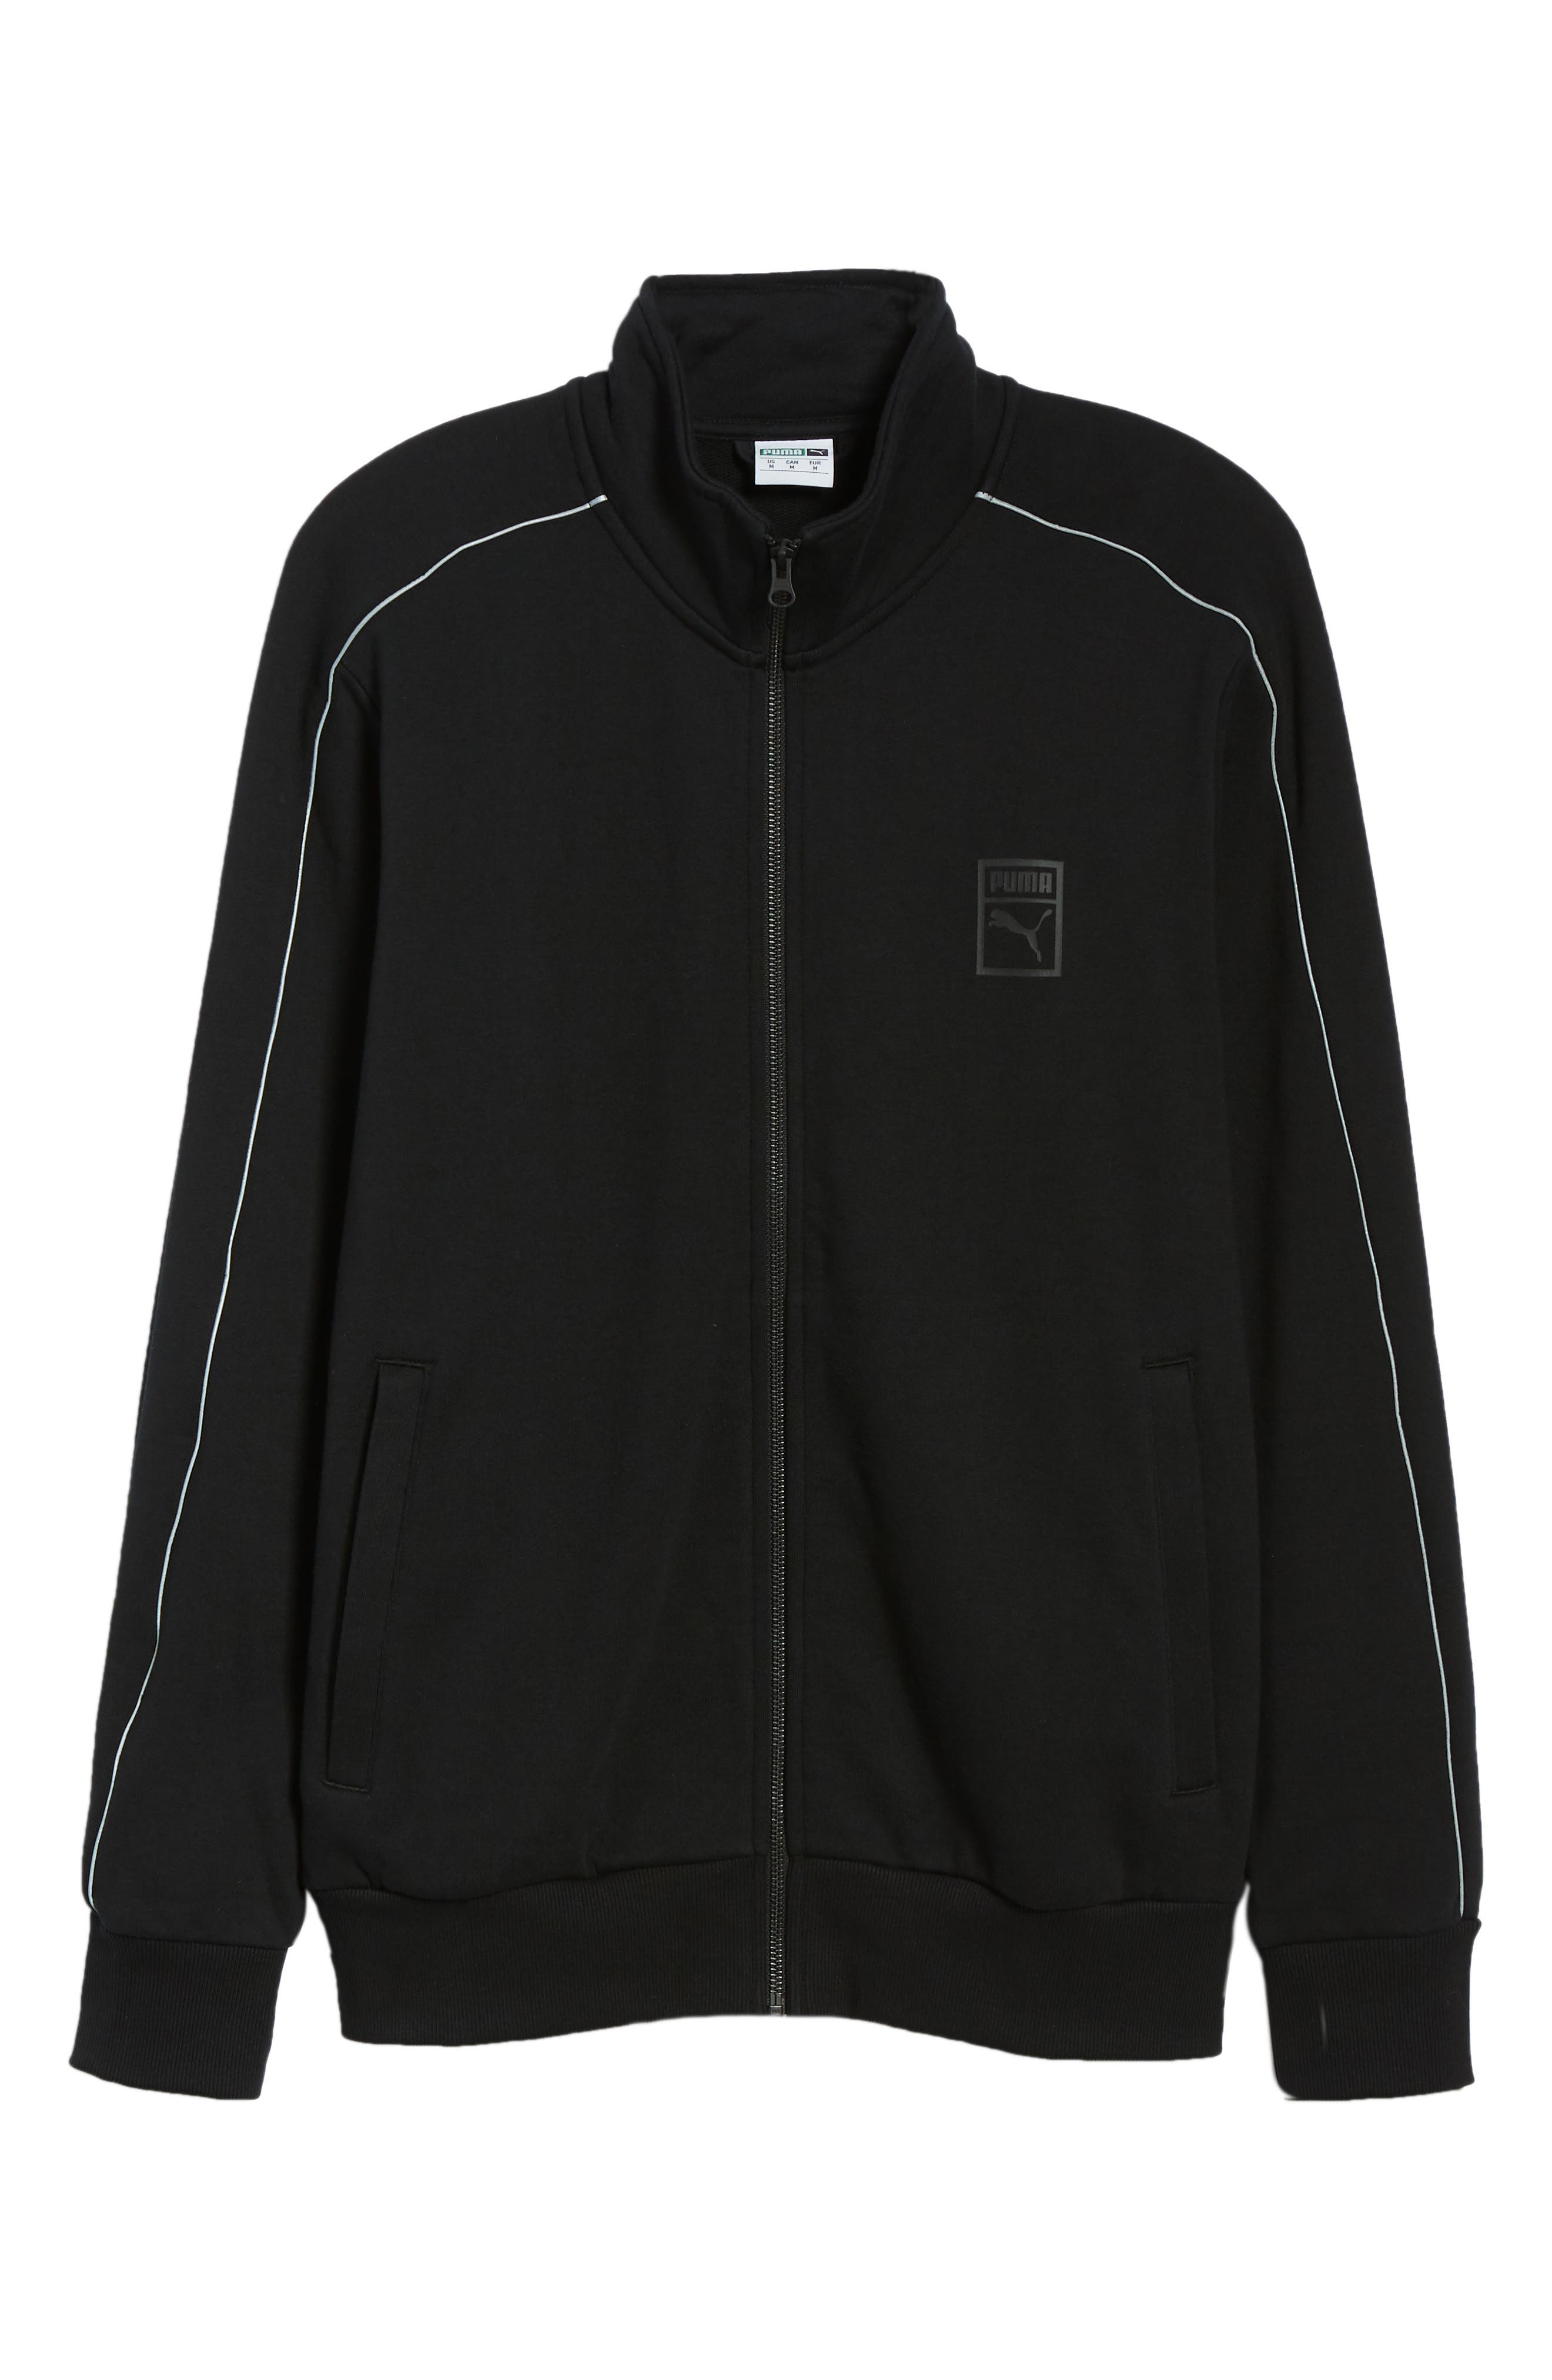 Chains T7 Track Jacket,                             Alternate thumbnail 5, color,                             PUMA BLACK/ GOLD